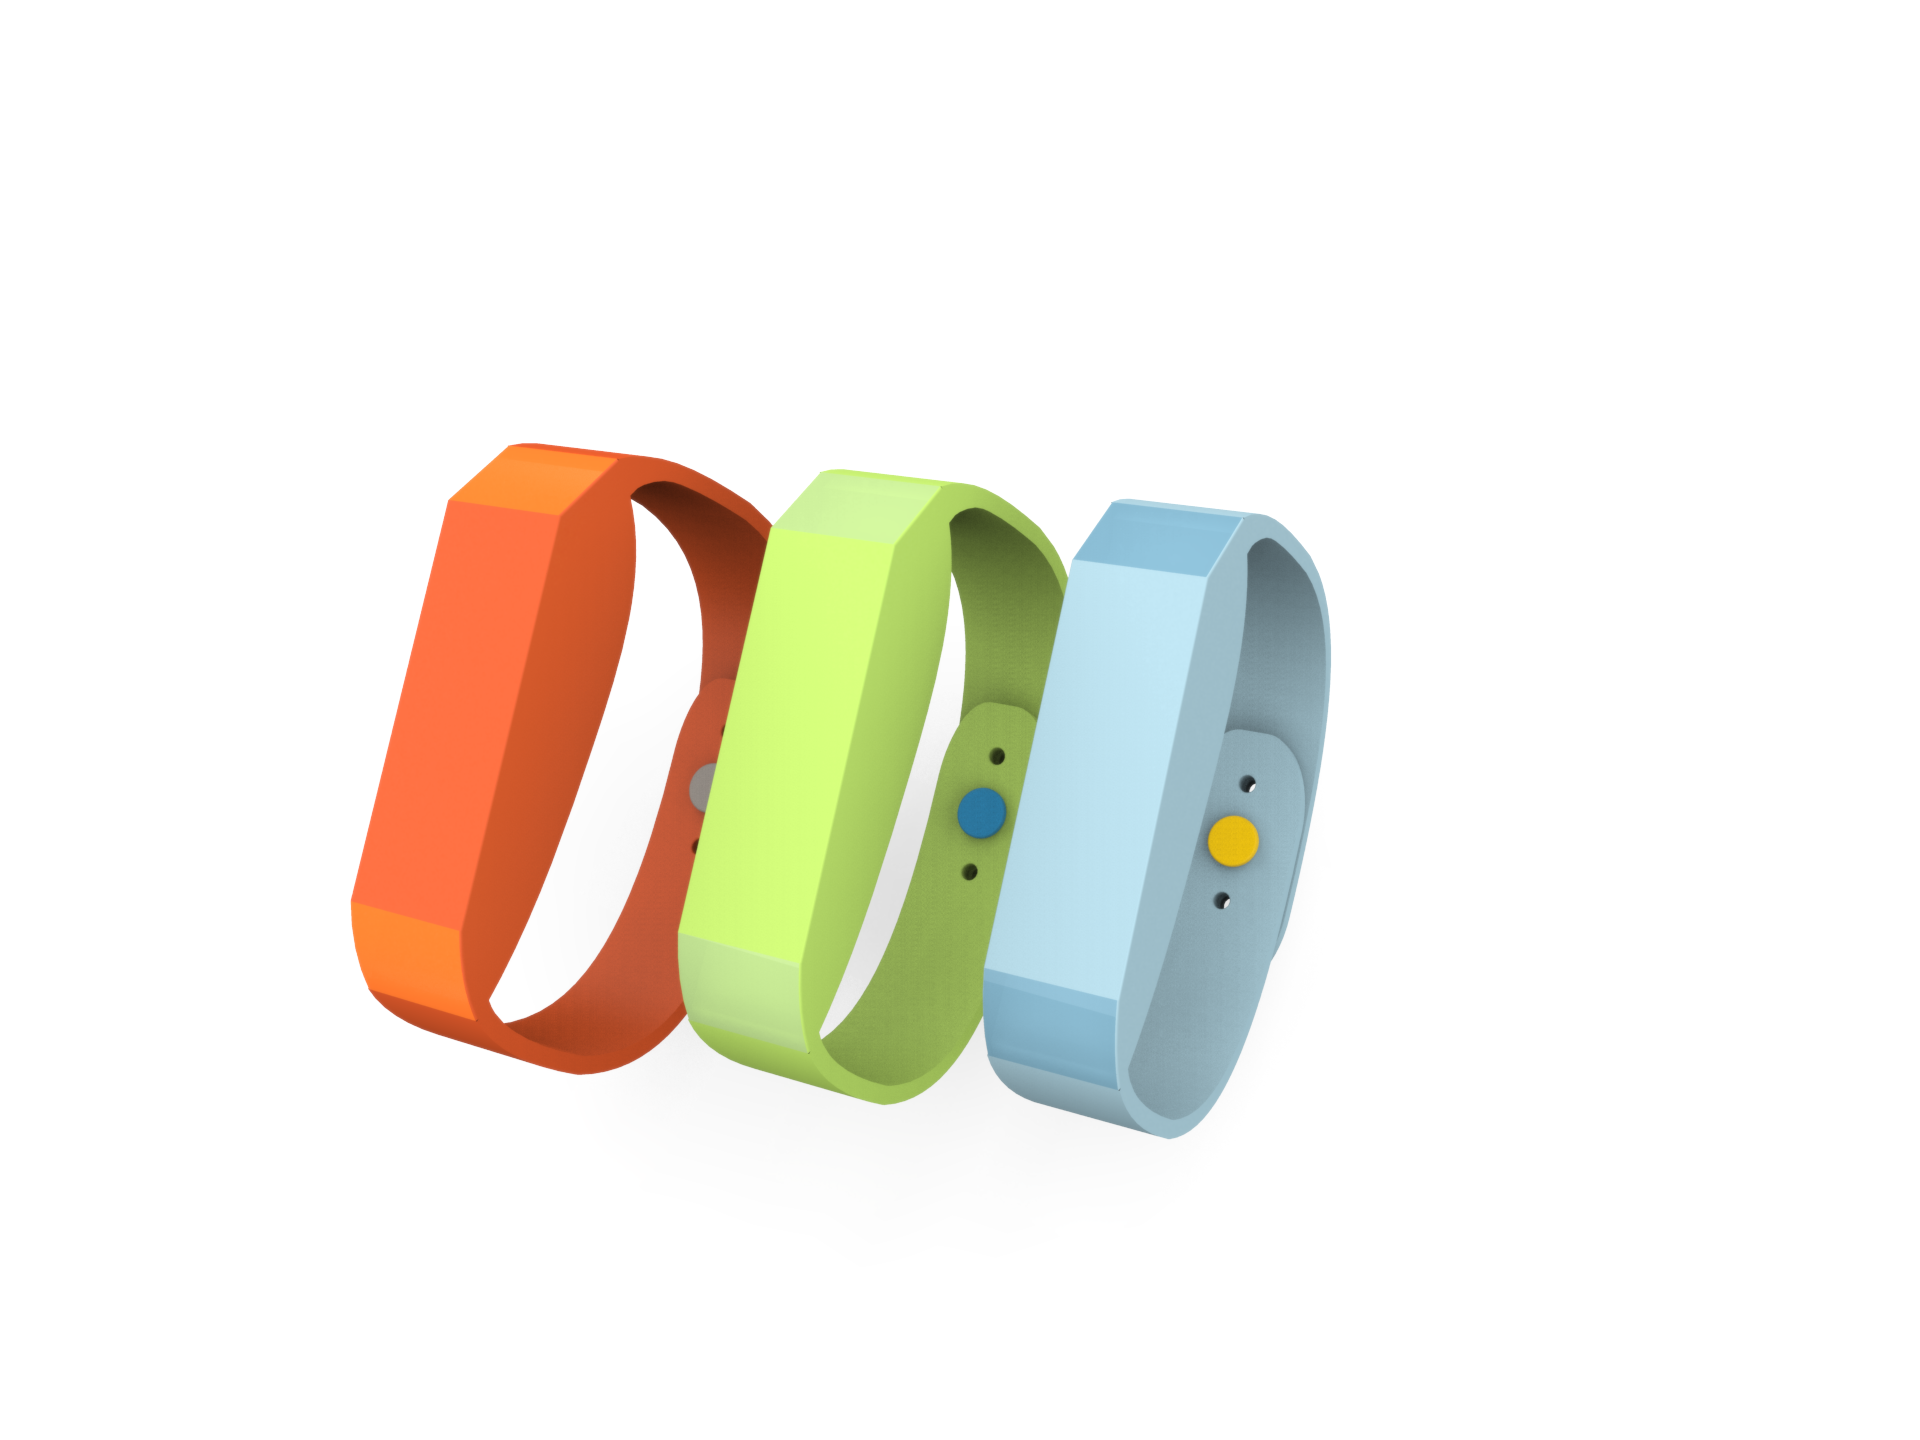 Traco - wearable device as a wristband